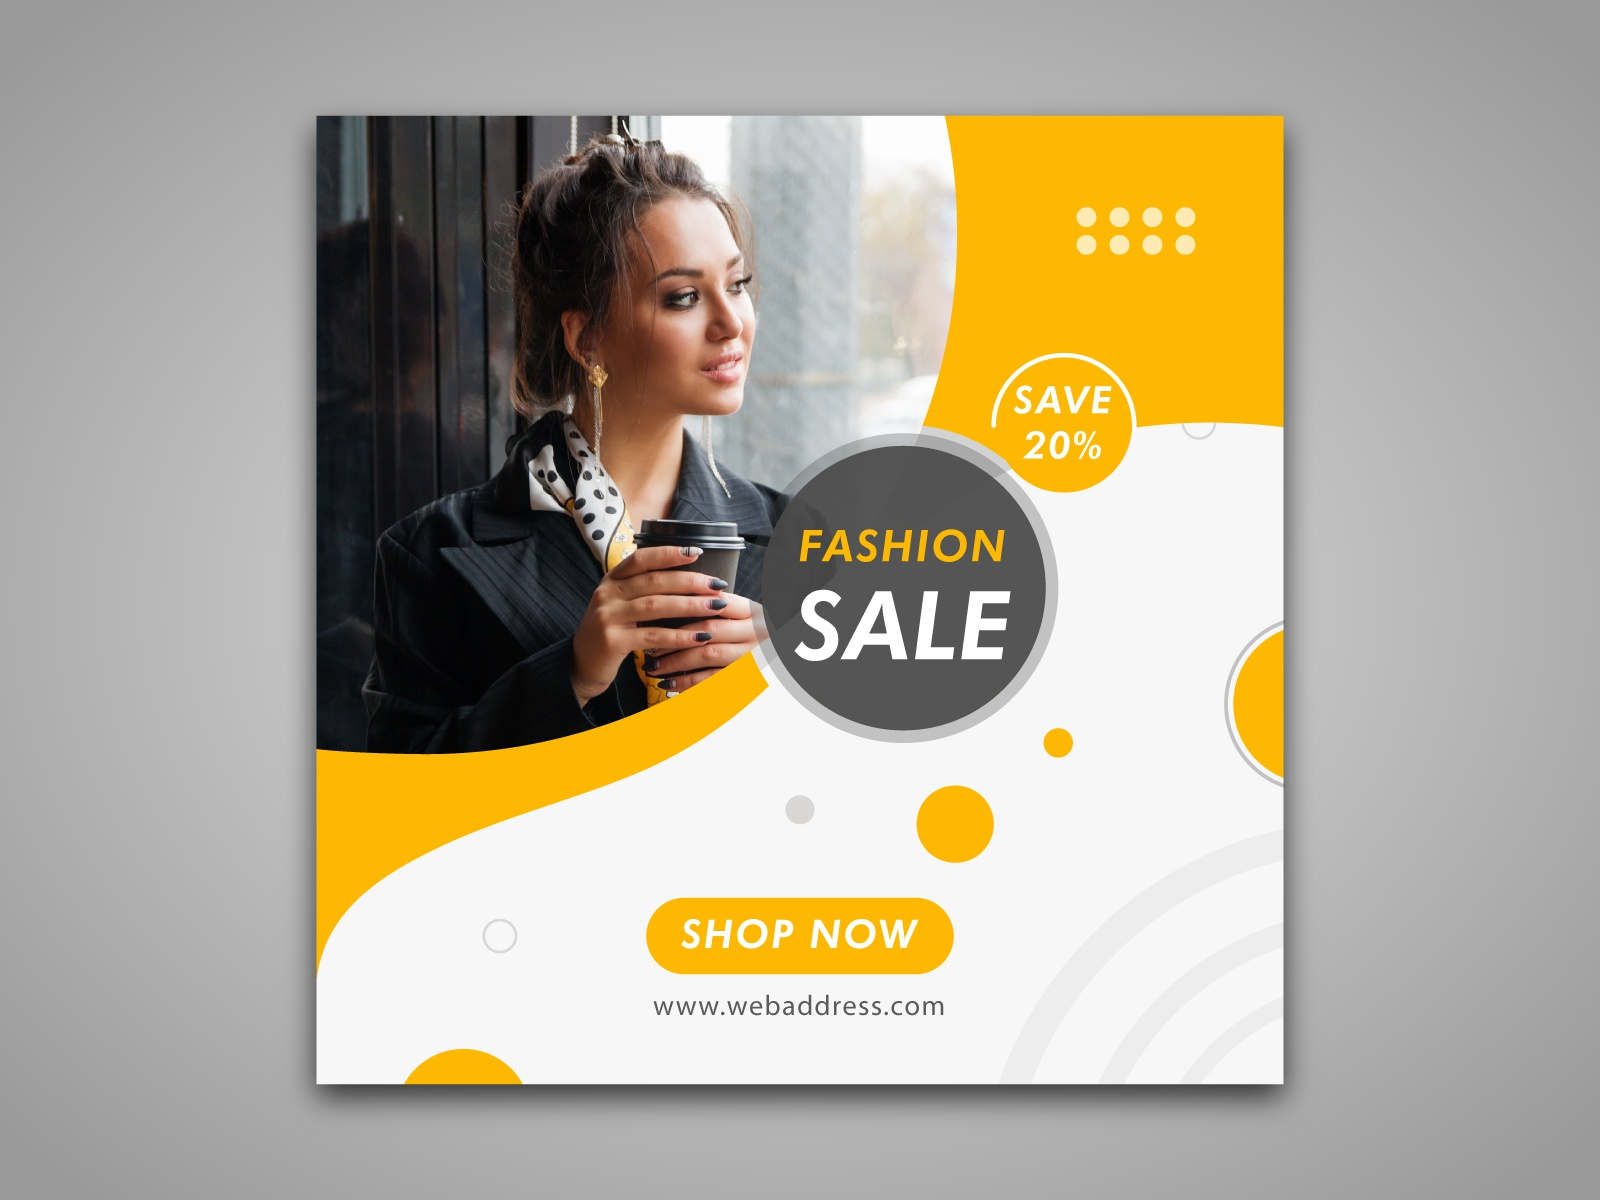 Fashion Sales Banner For Web Or Social Media By Md Atiqur Rahman On Dribbble